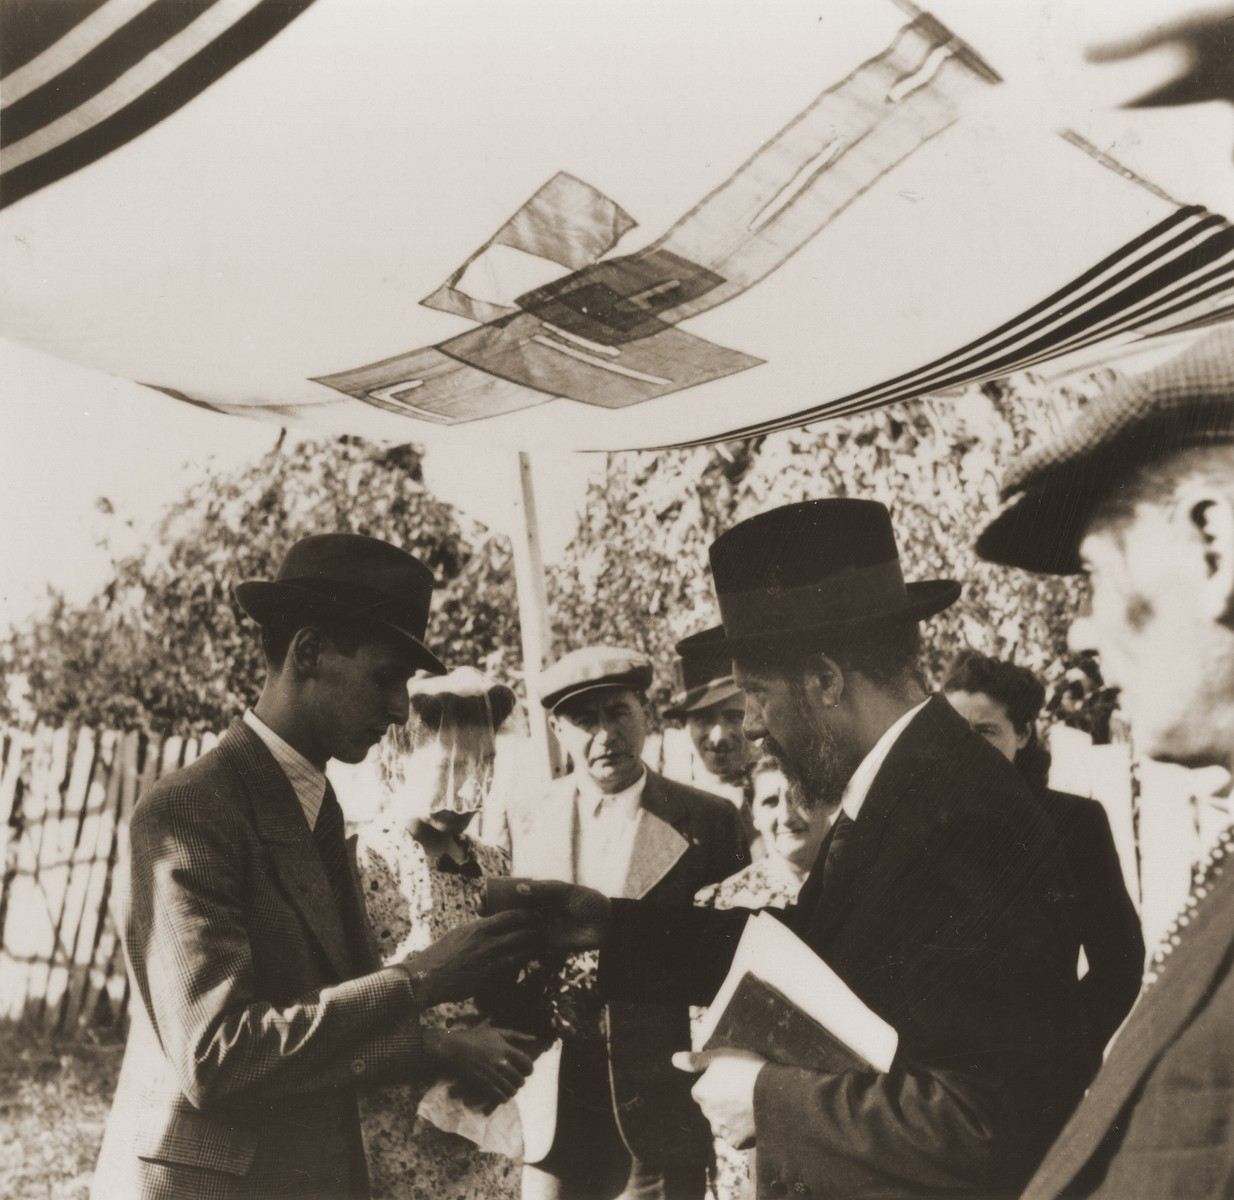 A Jewish refugee couple from the Kladovo transport are married outside under a chupa [canopy].